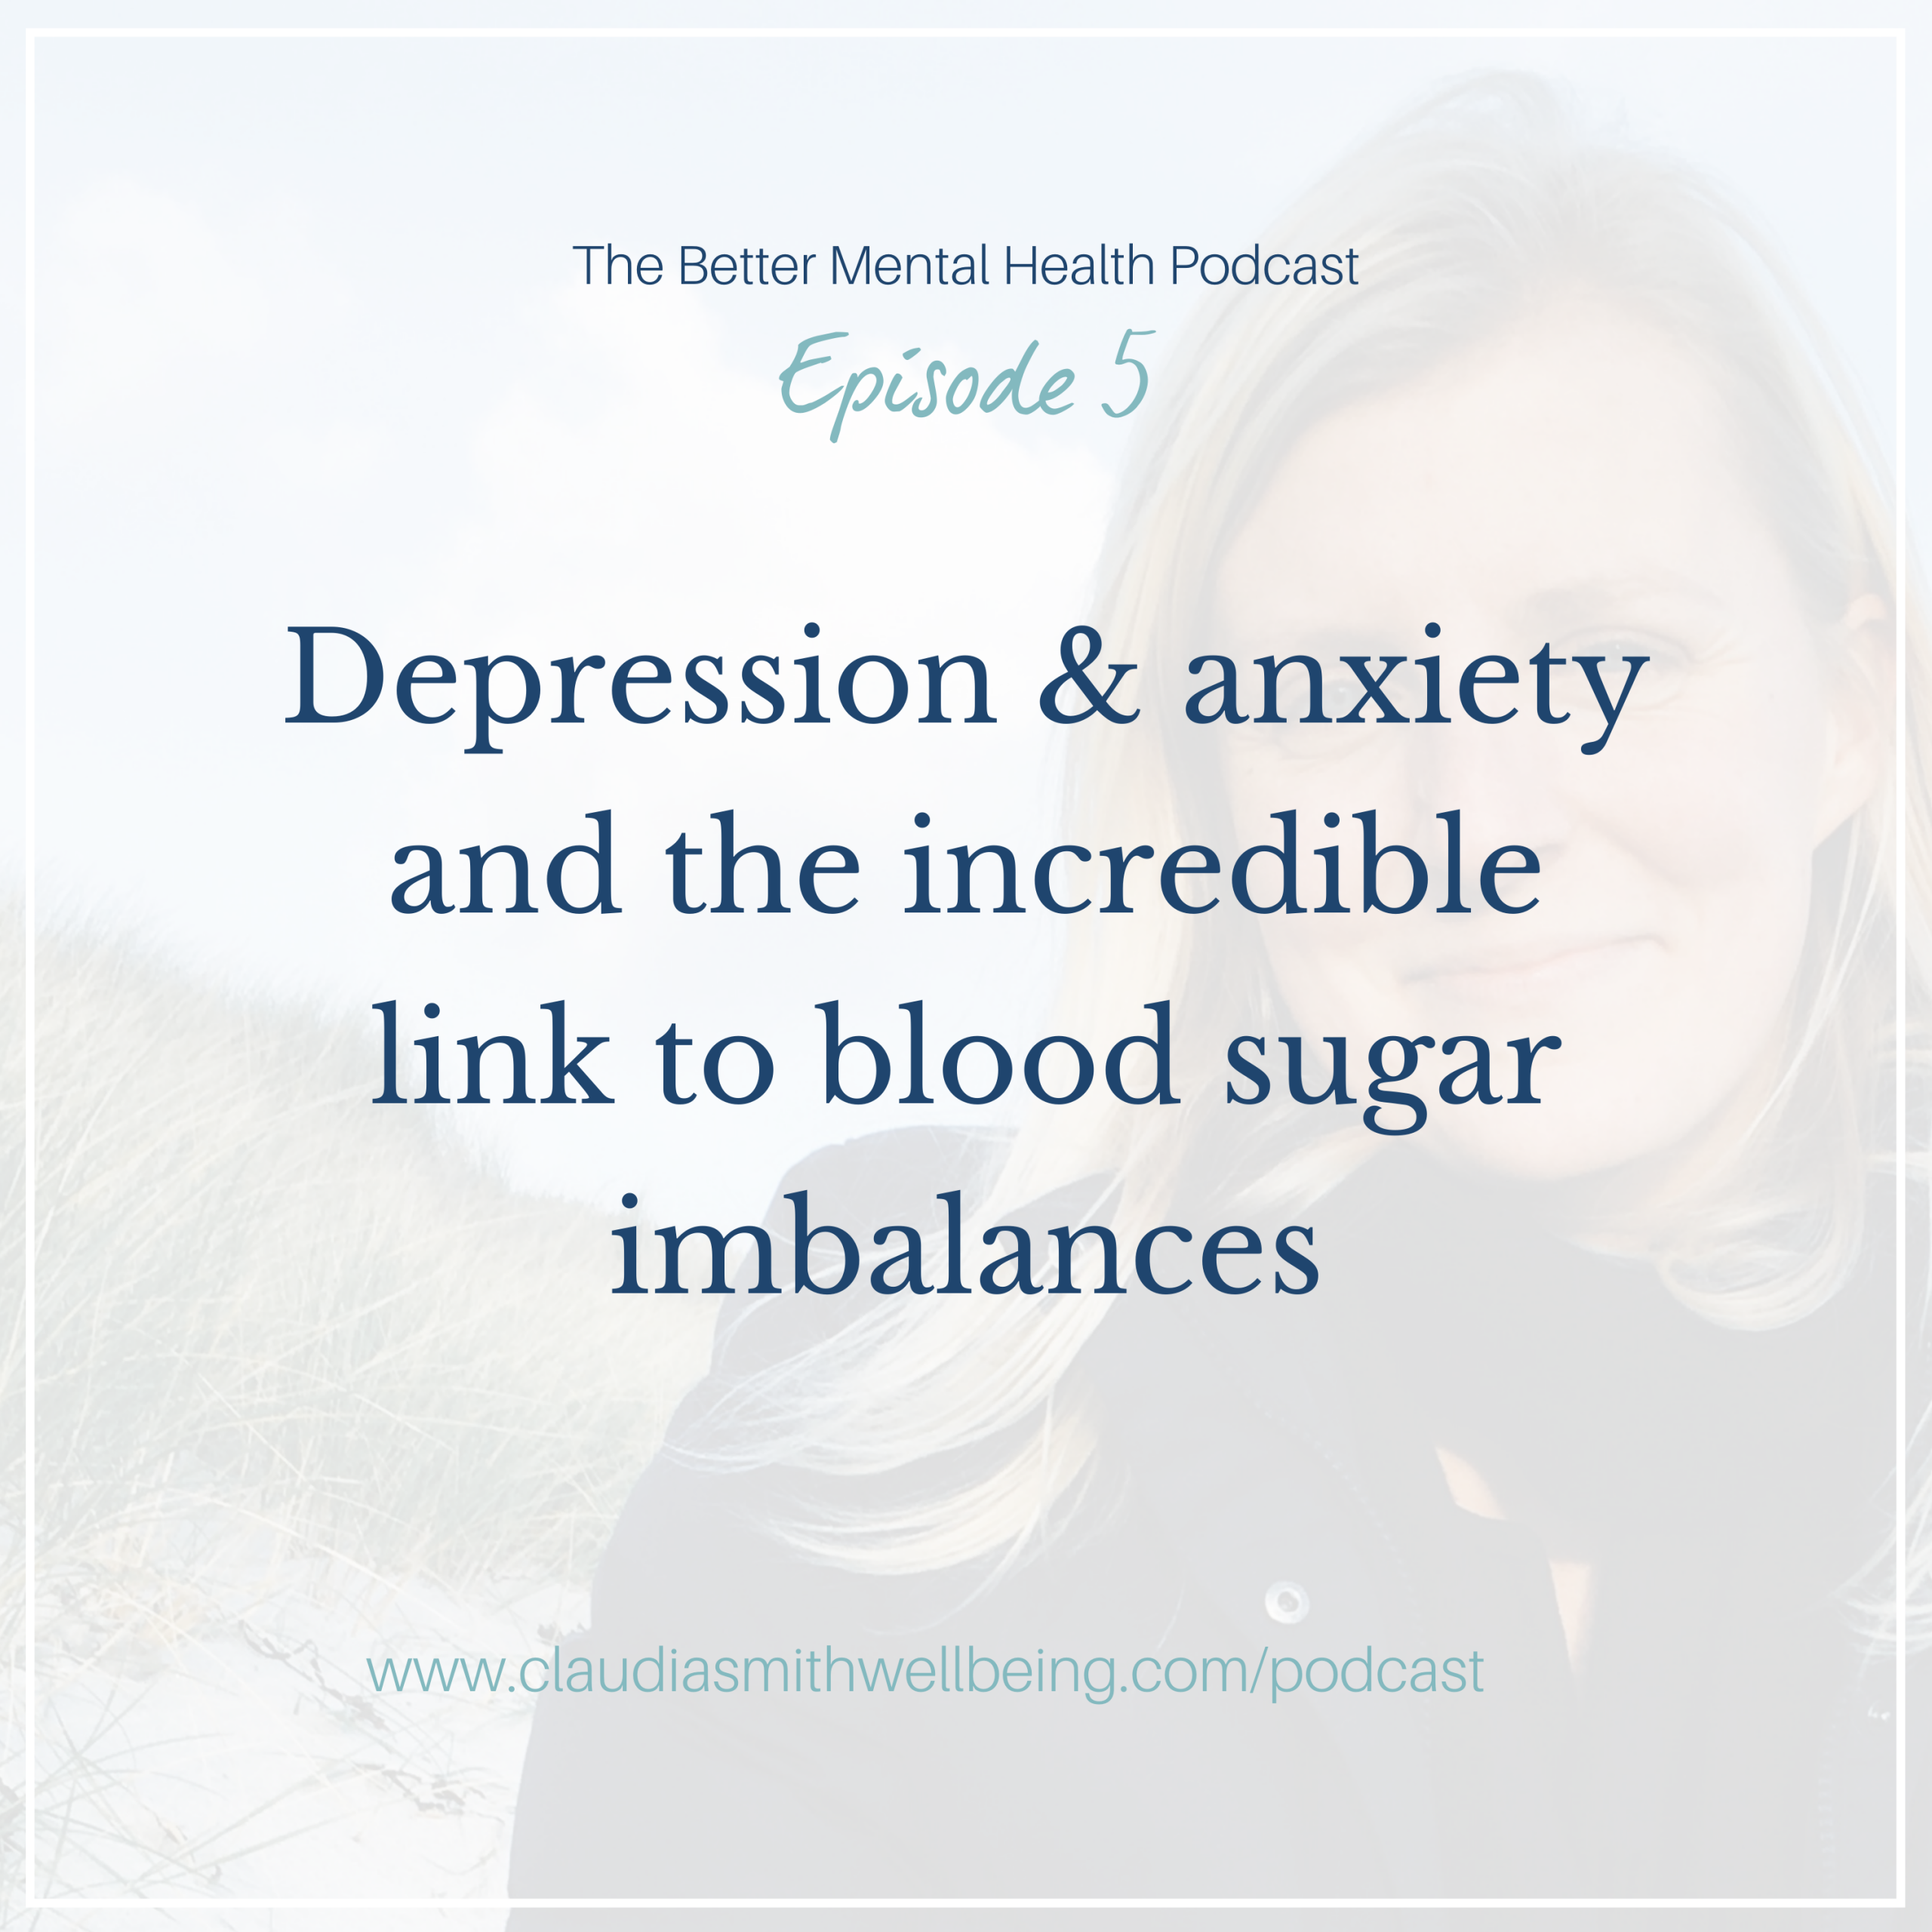 Depression, anxiety & the incredible link to blood sugar imbalances